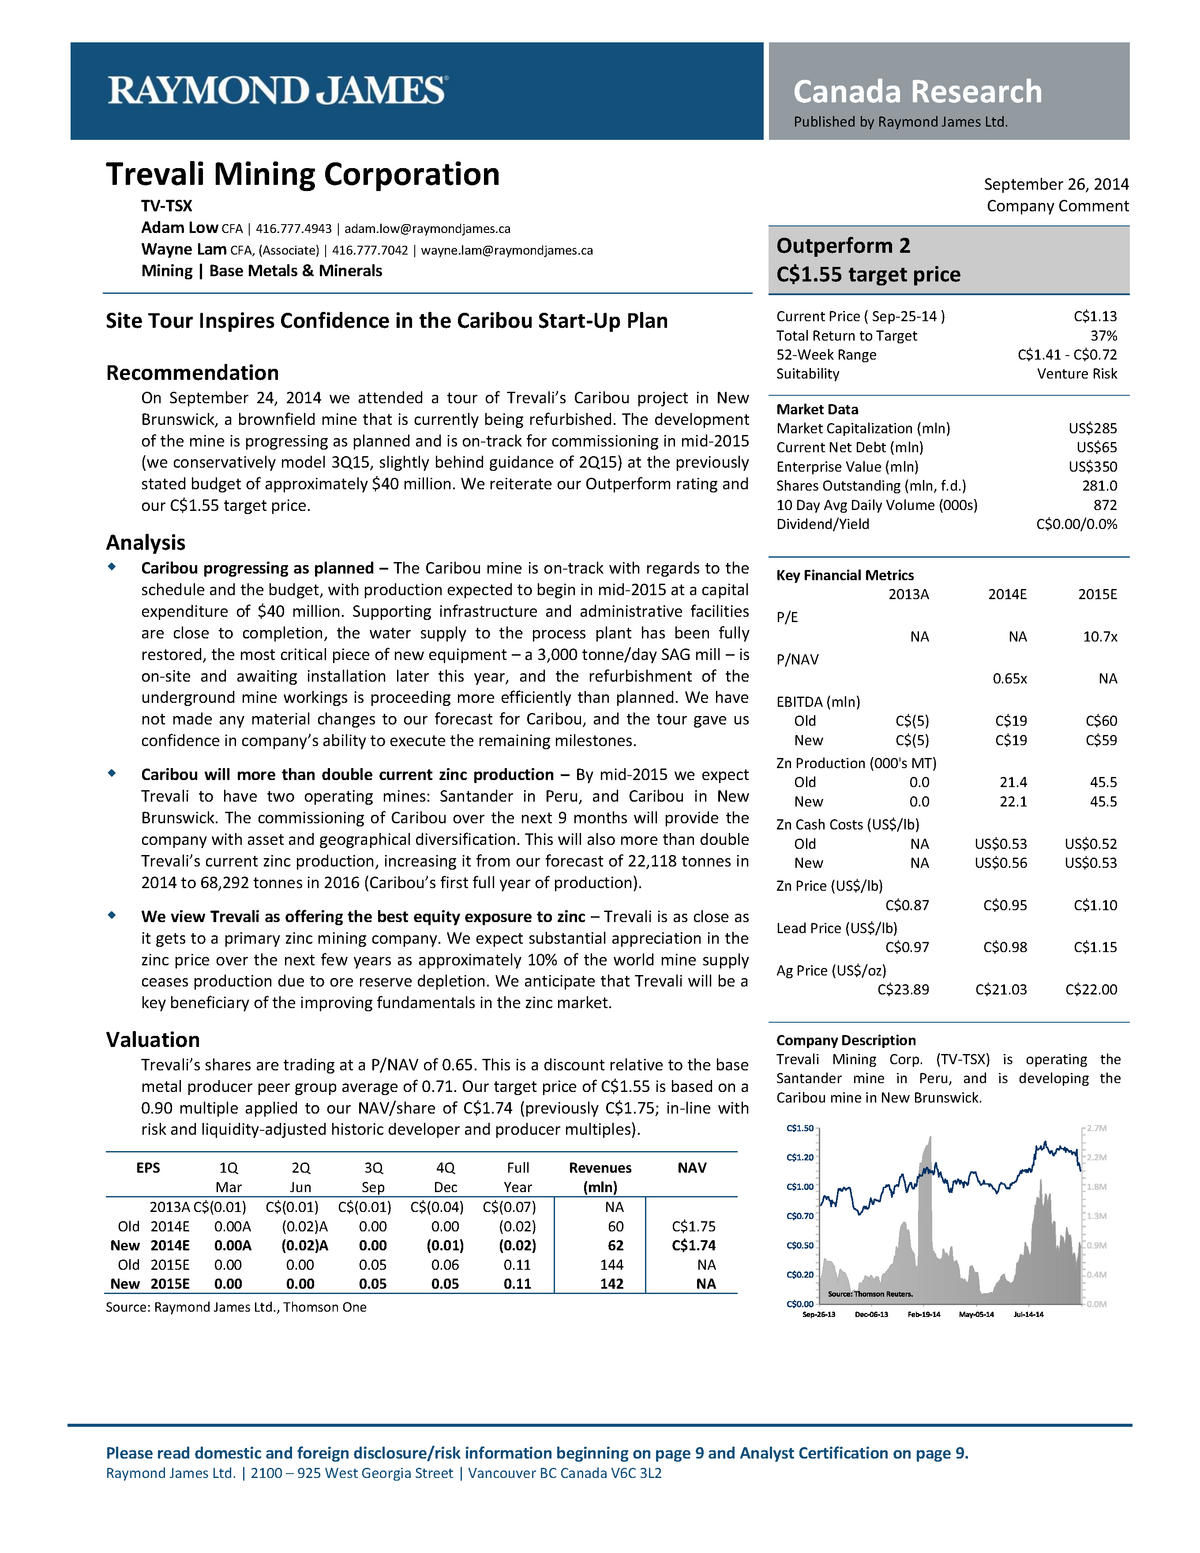 Raymond James - Trevali Mining Corp - Bus 315: Investments